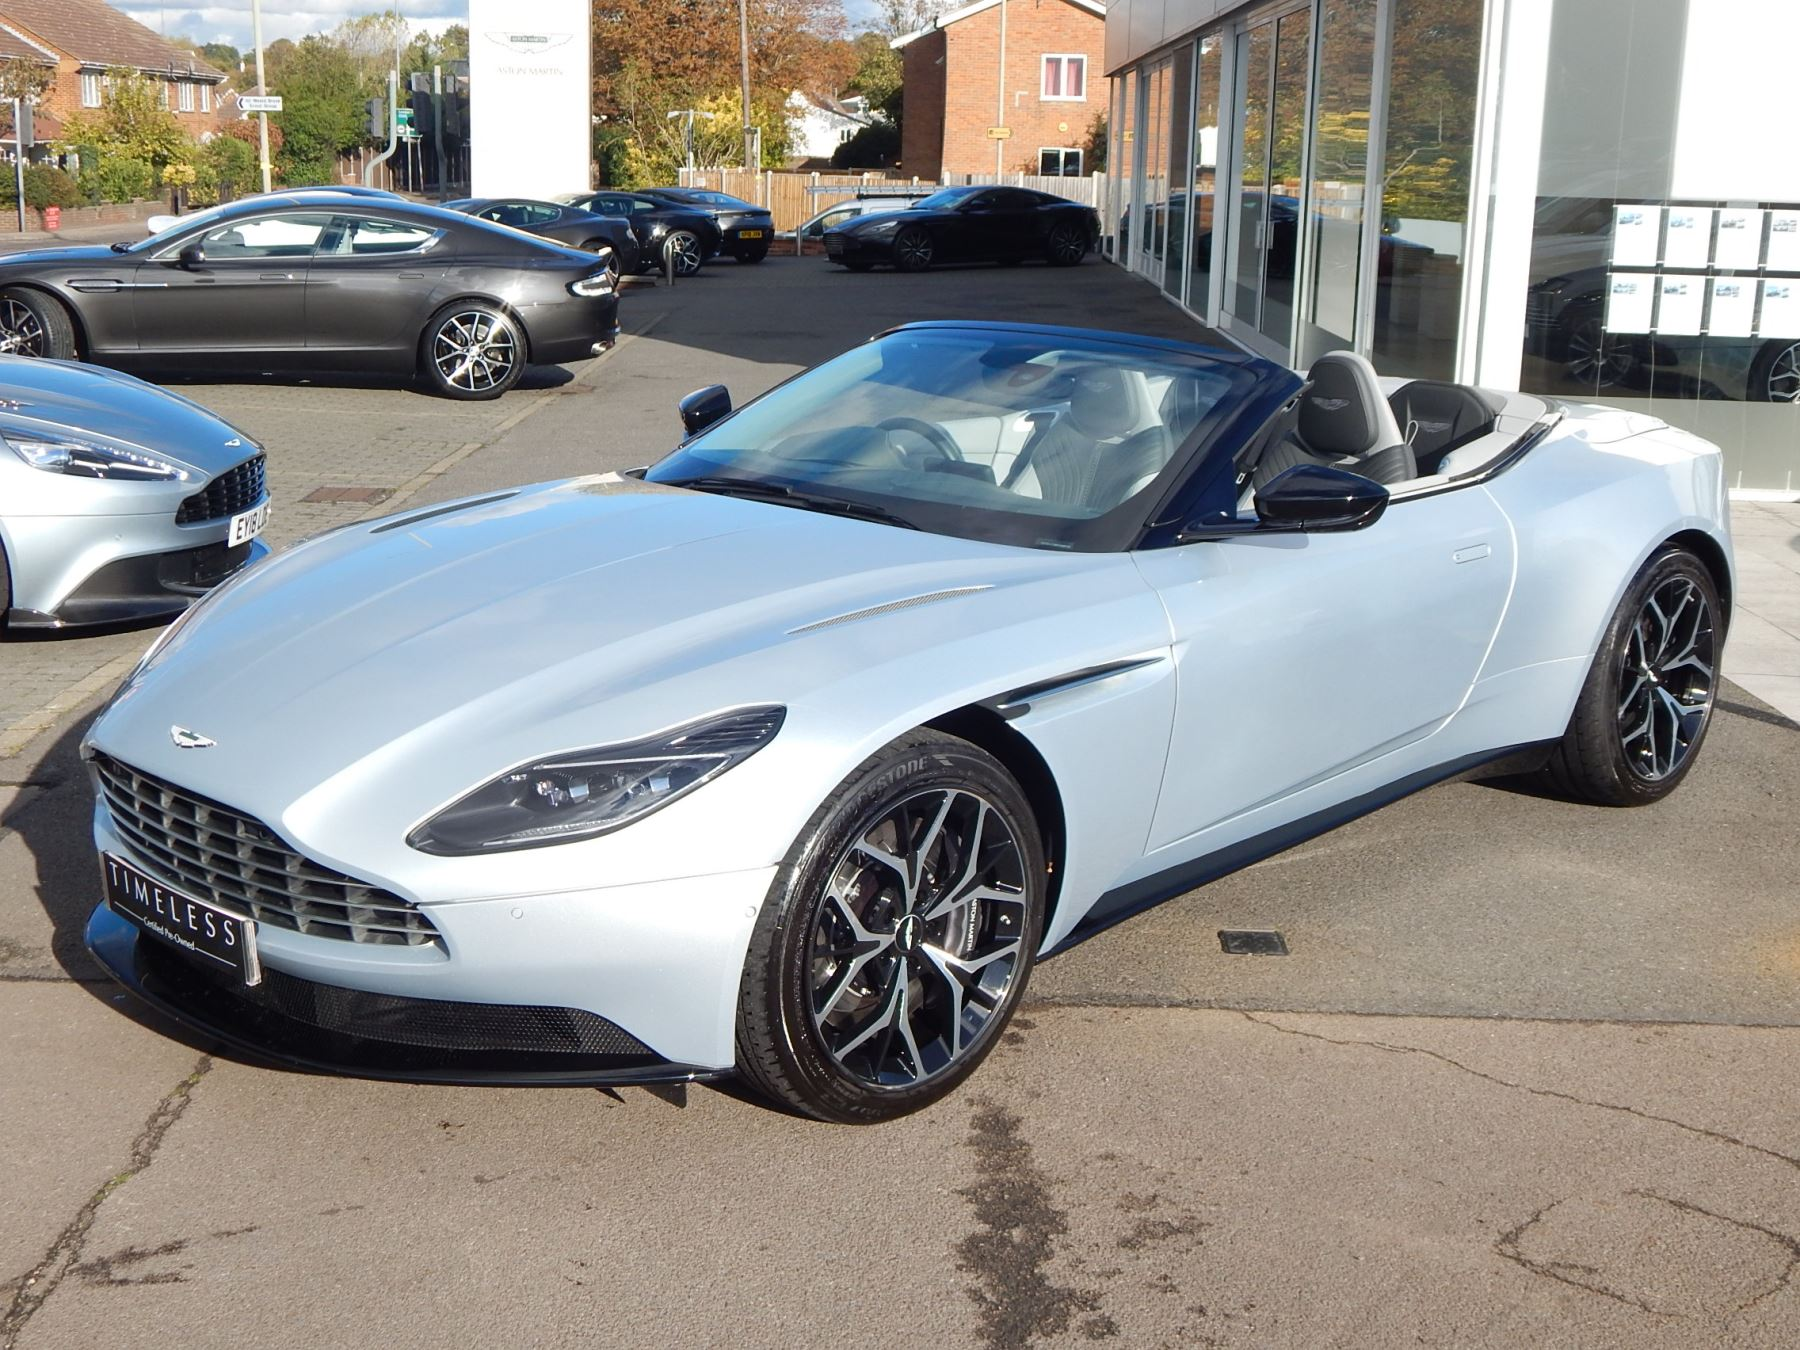 Aston Martin DB11 Volante 4.0 V8 Twin Turbo image 4